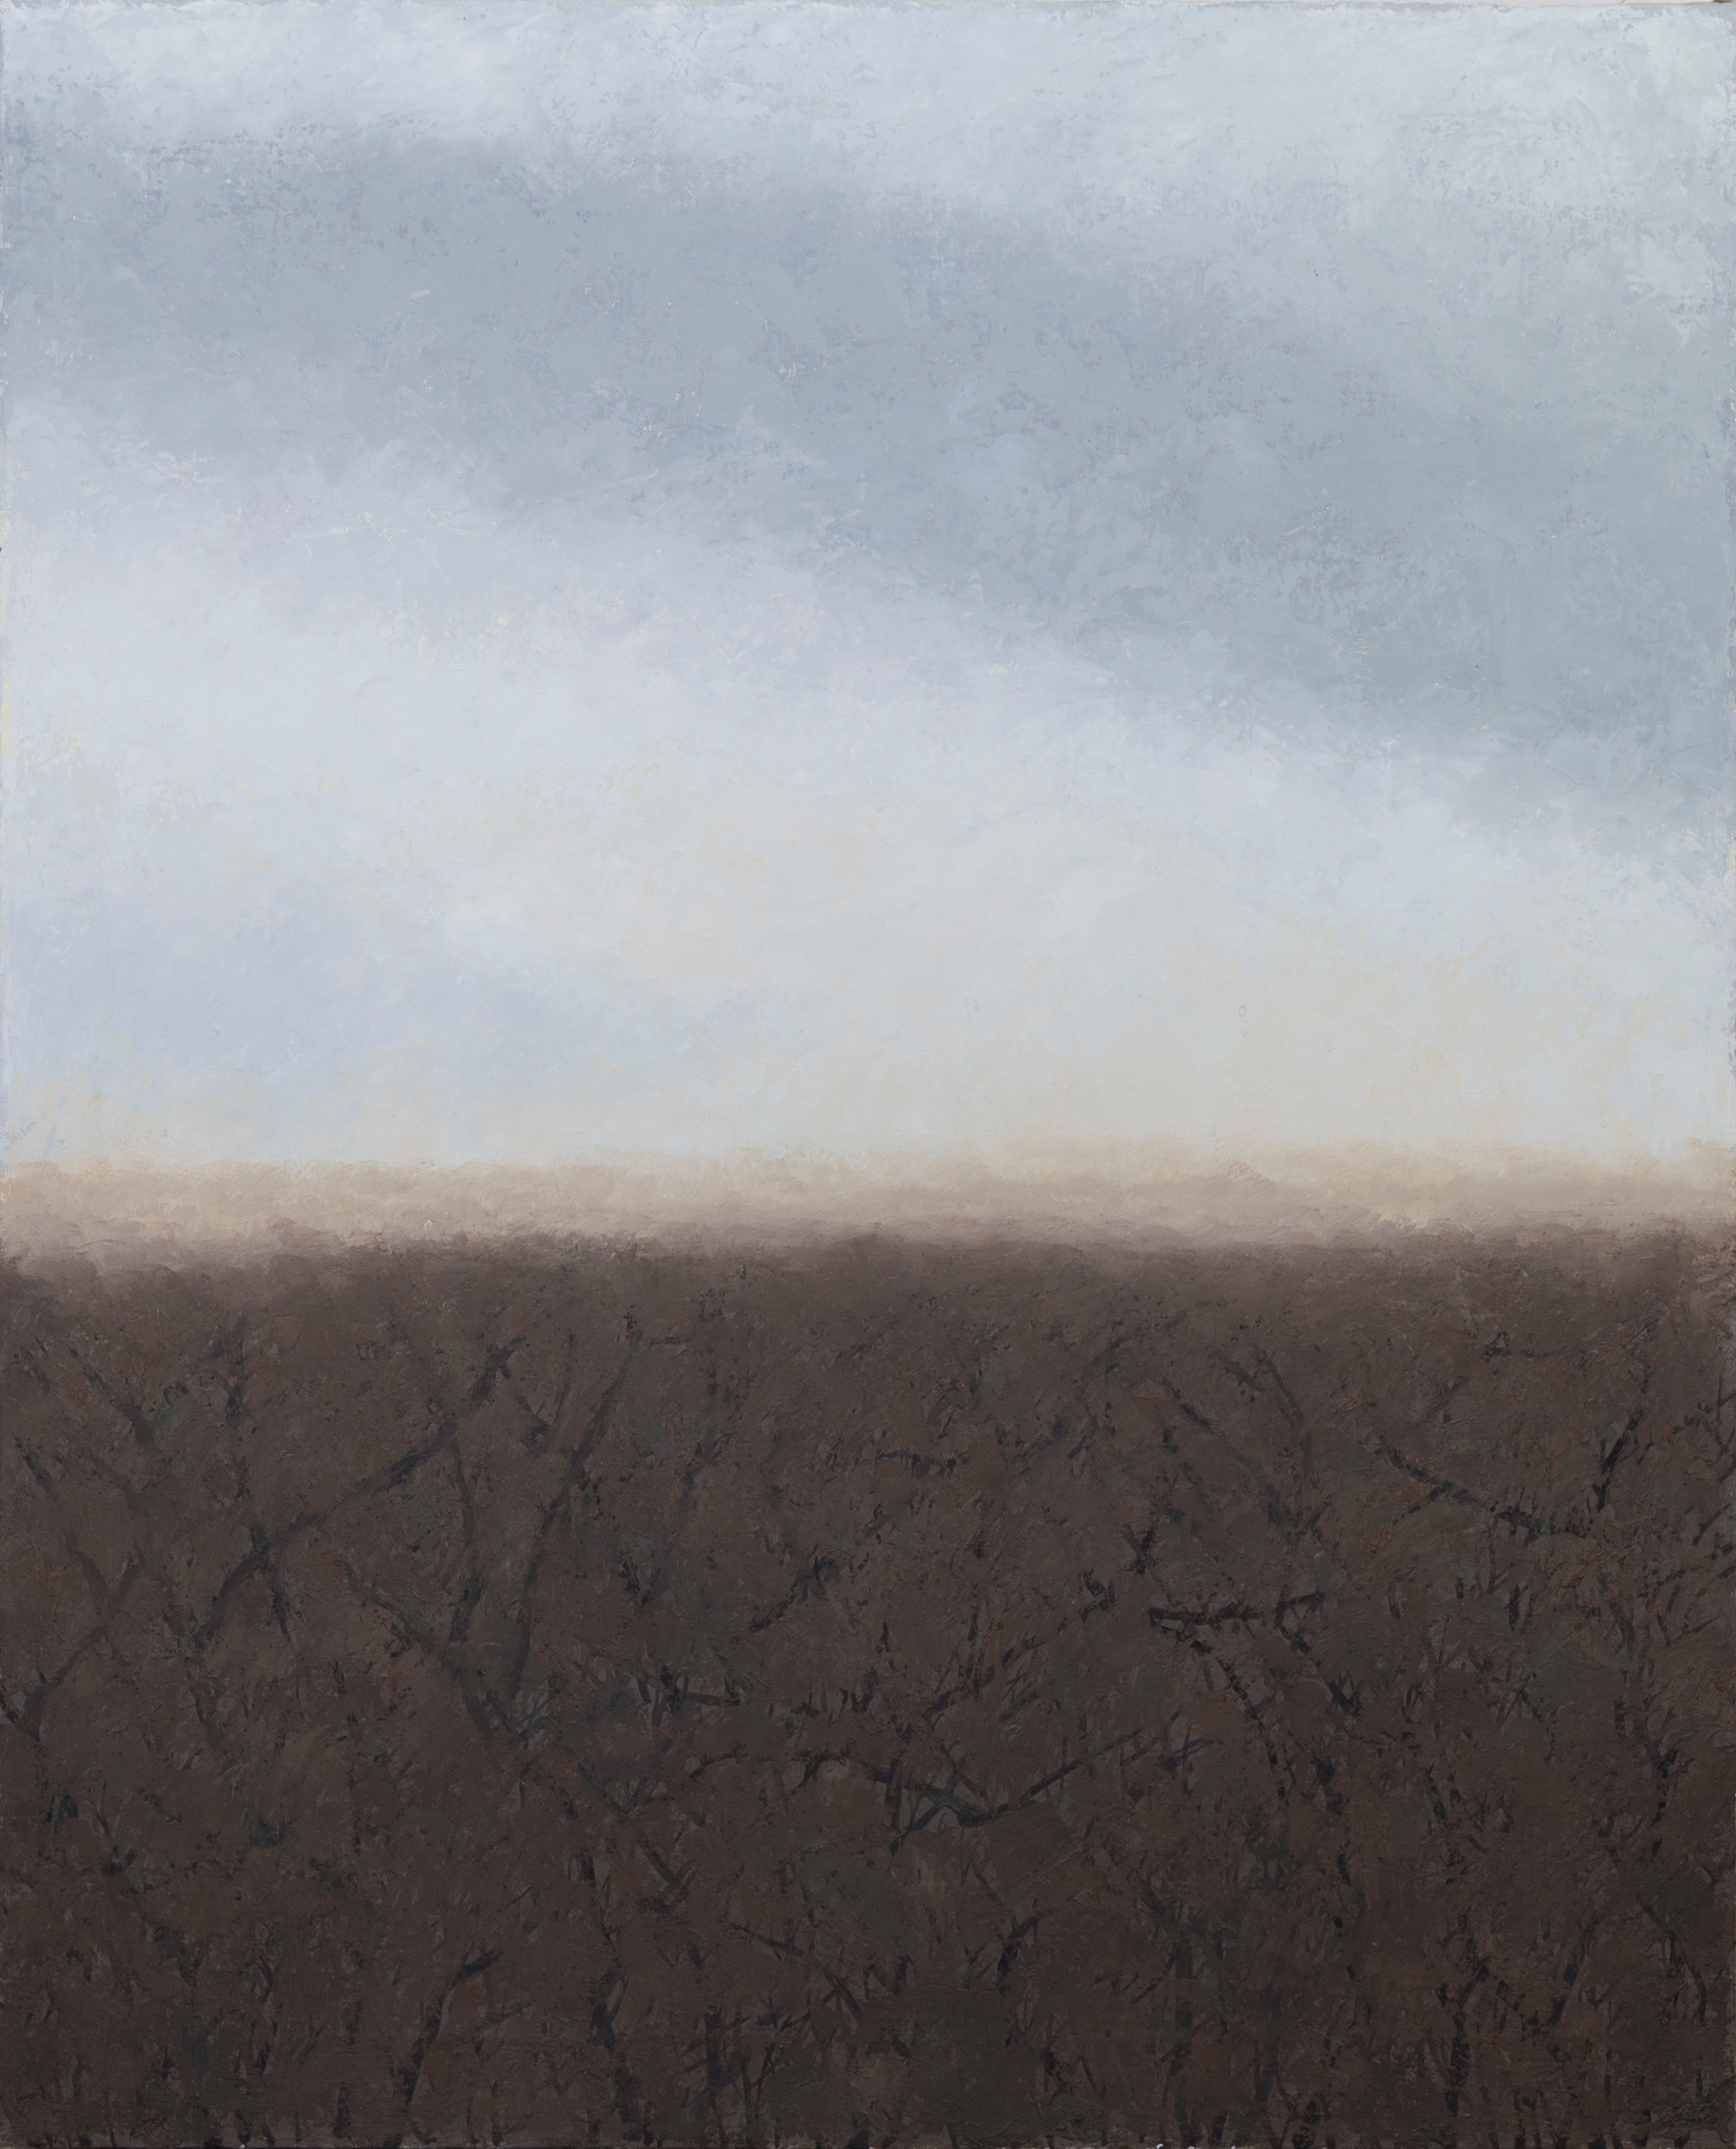 Untitled - gray sky and brown field (2)